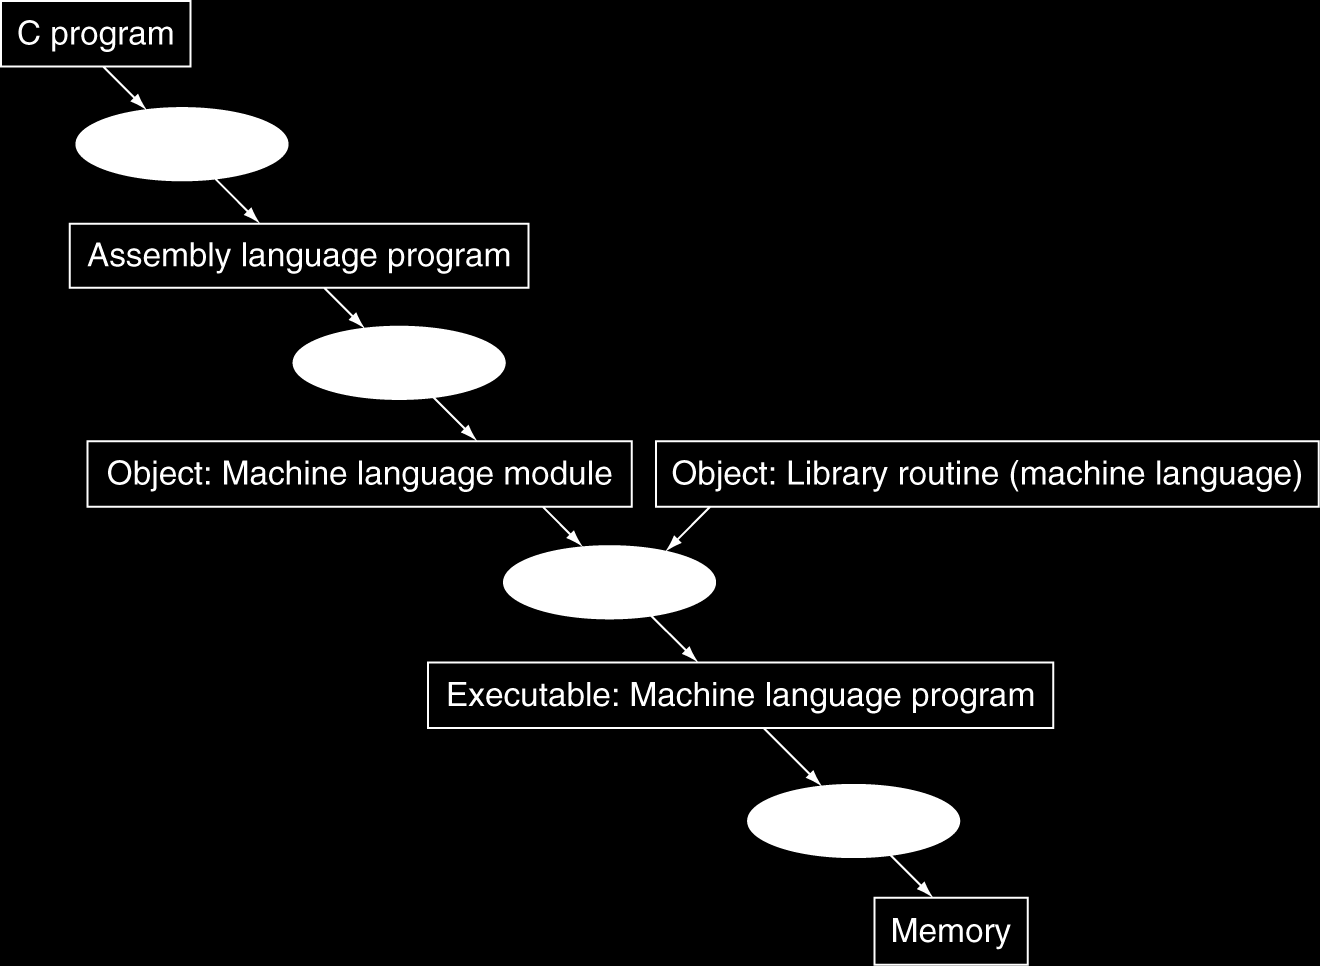 Many compilers produce object modules